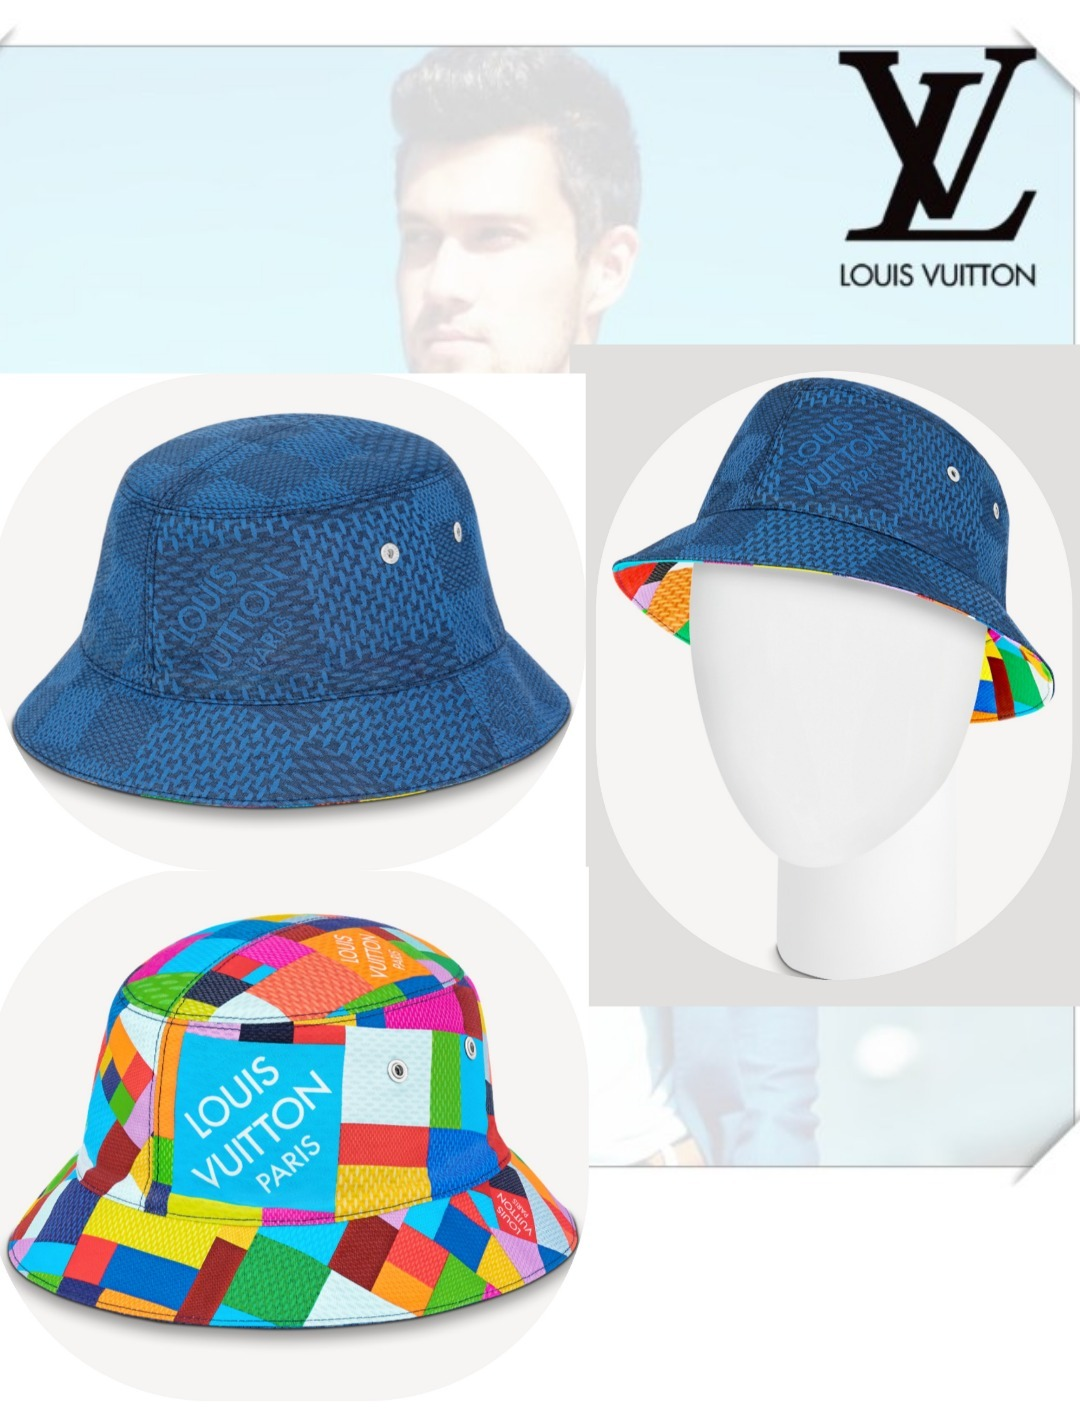 【Louis Vuitton】 ボネ・ダミエ 3D ハット (Louis Vuitton/ハット) M76582